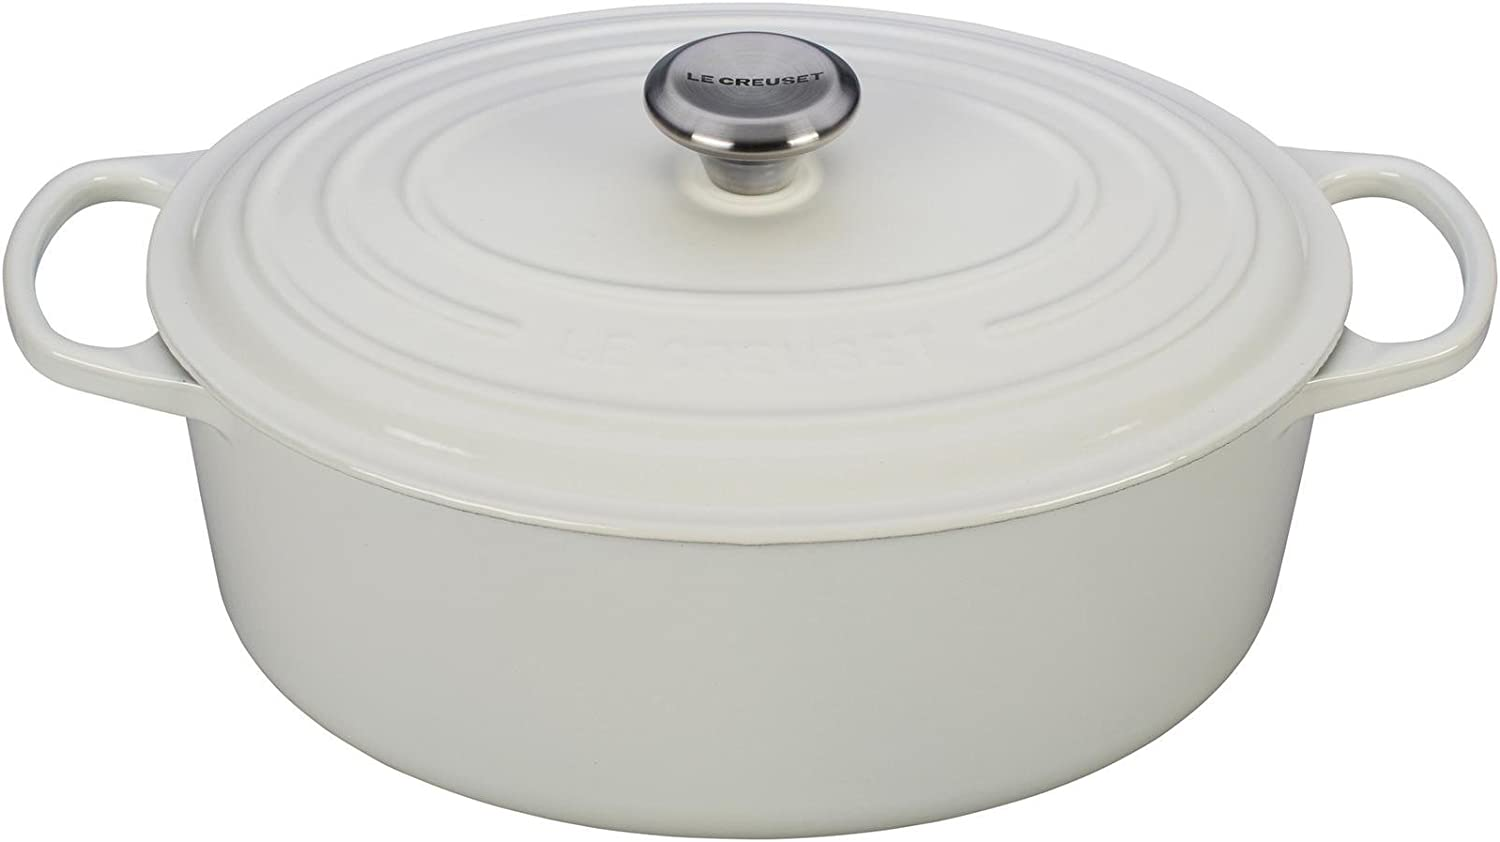 Le Creuset Enameled Cast Iron Signature Oval Dutch Oven, 6.75 qt., White